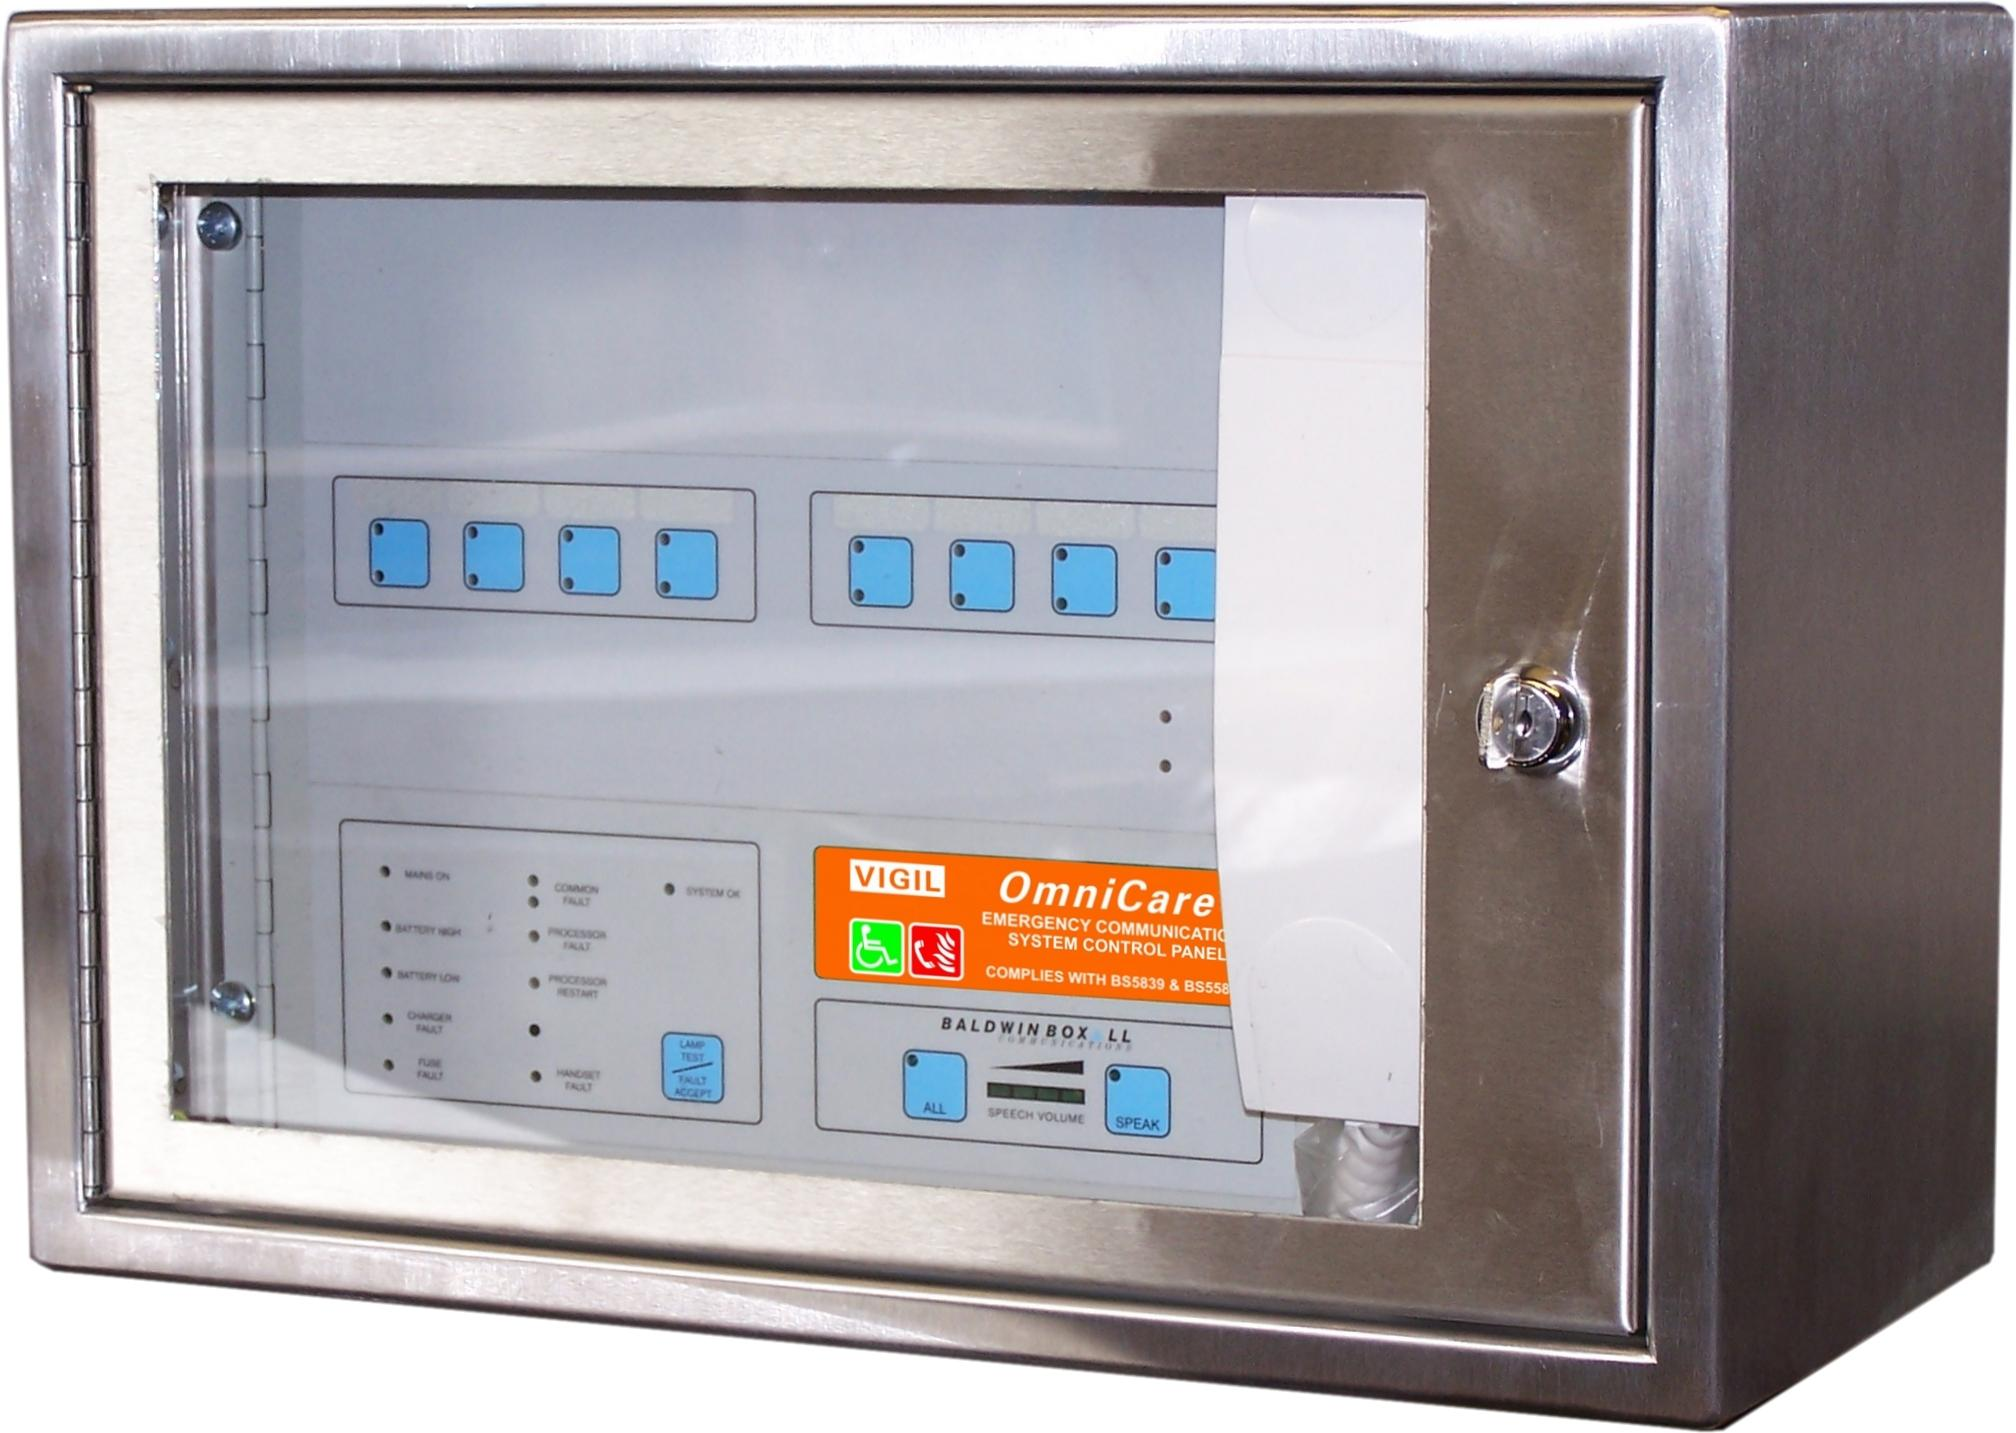 PAI Group Web Shop | Baldwin Boxall OmniCare BVOC8MS Mini Master Control Panel 4-Way Stainless Steel